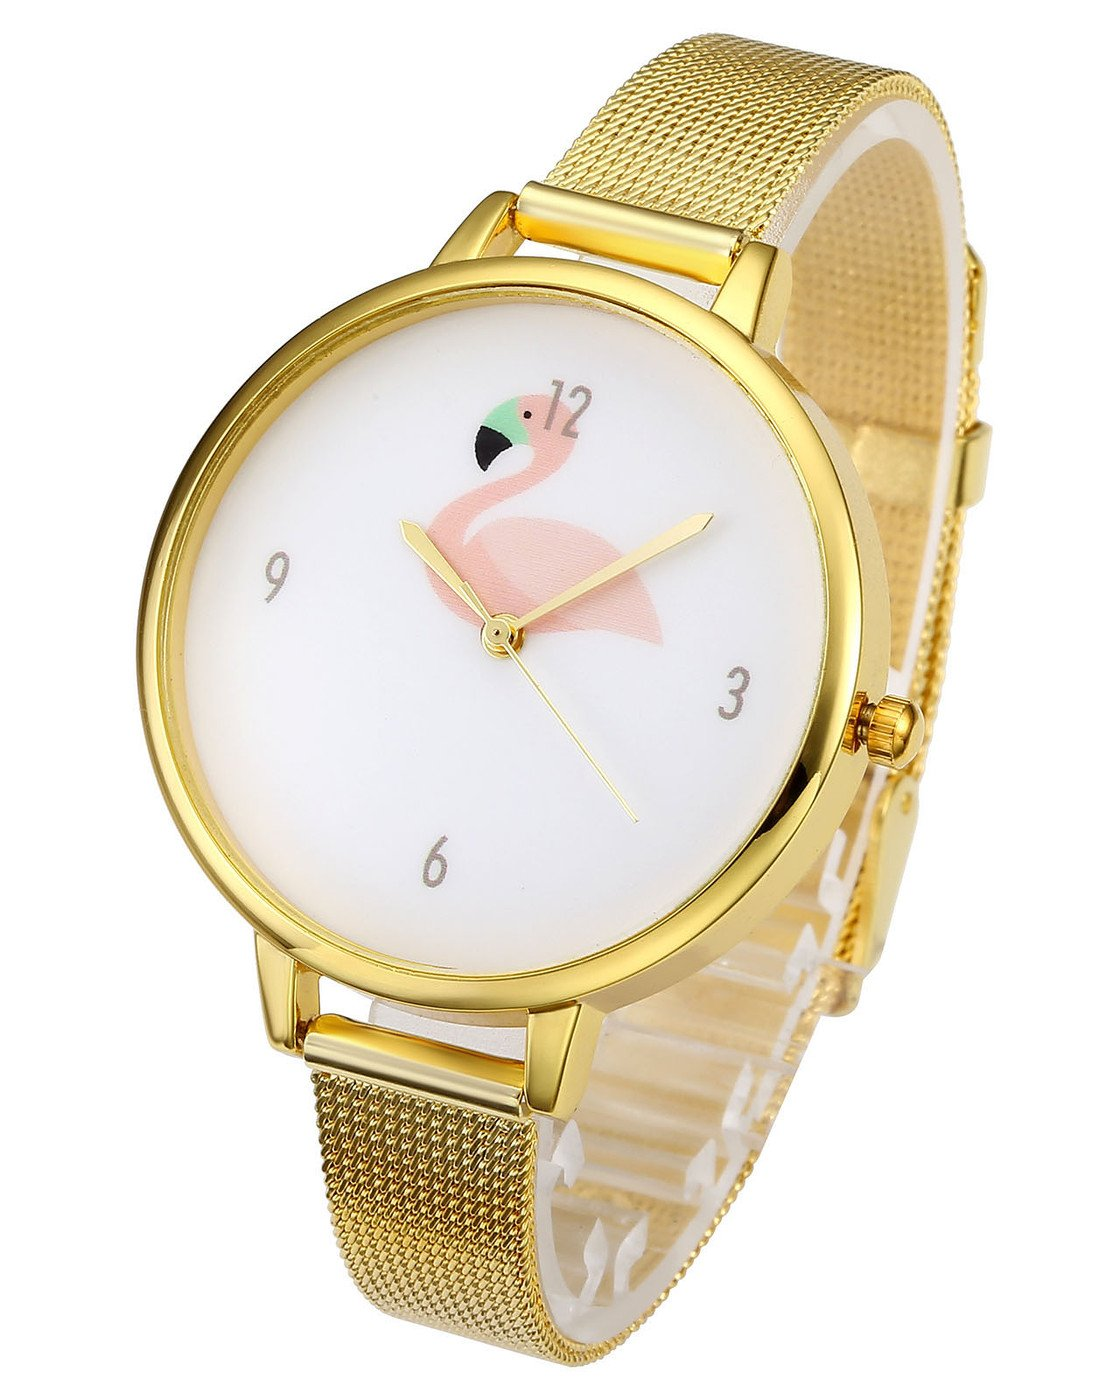 Top Plaza Womens Fashion Gold Tone Analog Quartz Bracelet Wrist Watch, Cute Pink Flamingo Pattern, Mesh Metal Thin Band